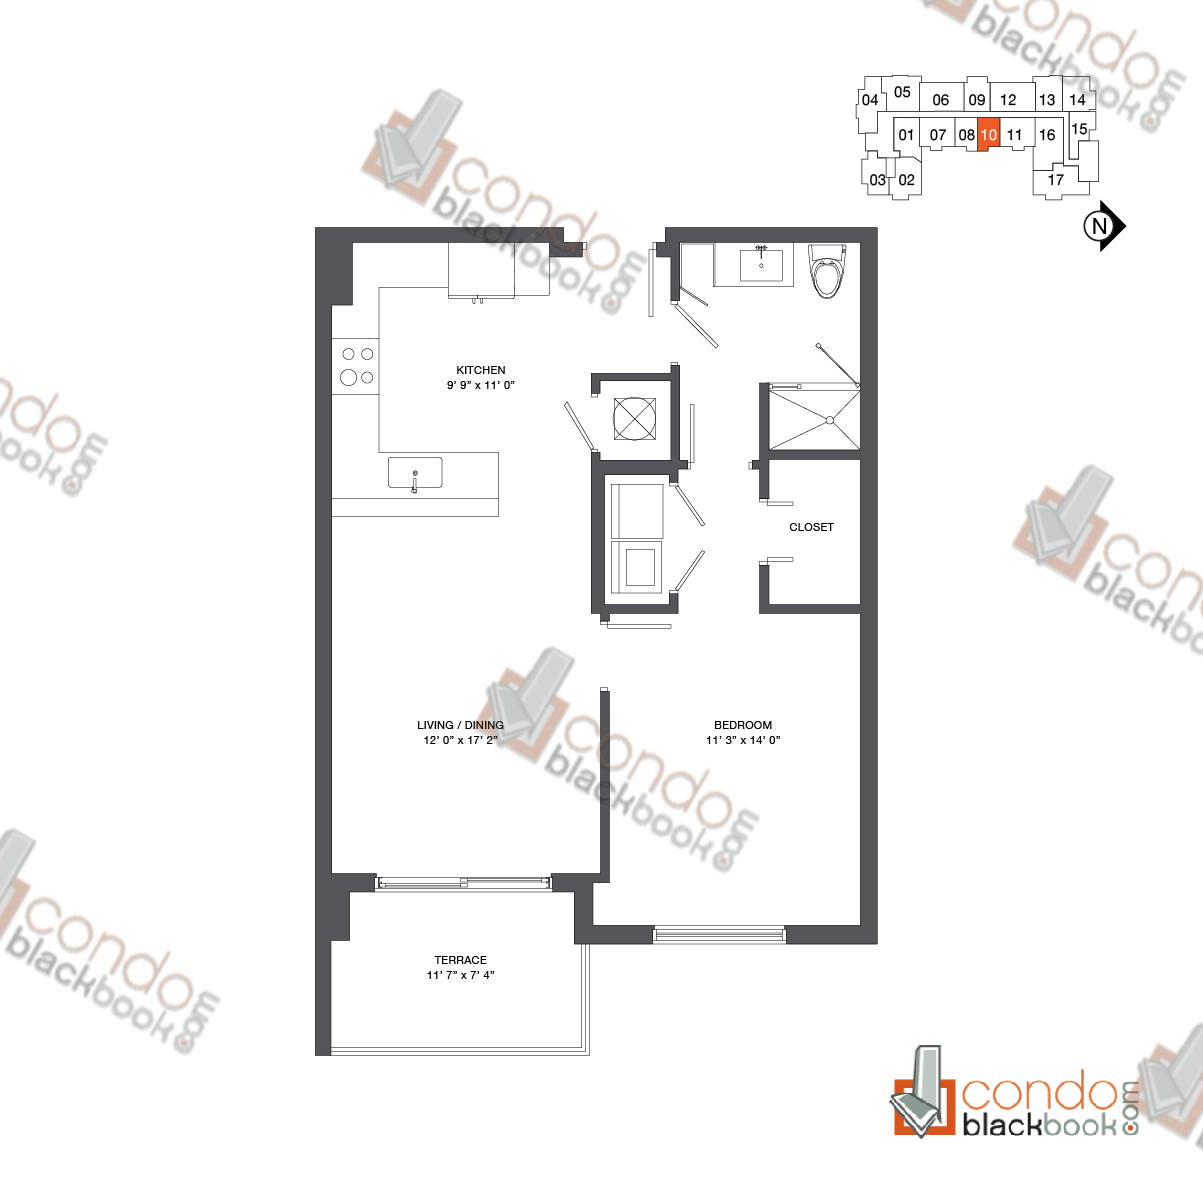 Floor plan for Nine at Mary Brickell Village Brickell Miami, model Residence 12-33_10, line 10, 1/1 bedrooms, 749 sq ft